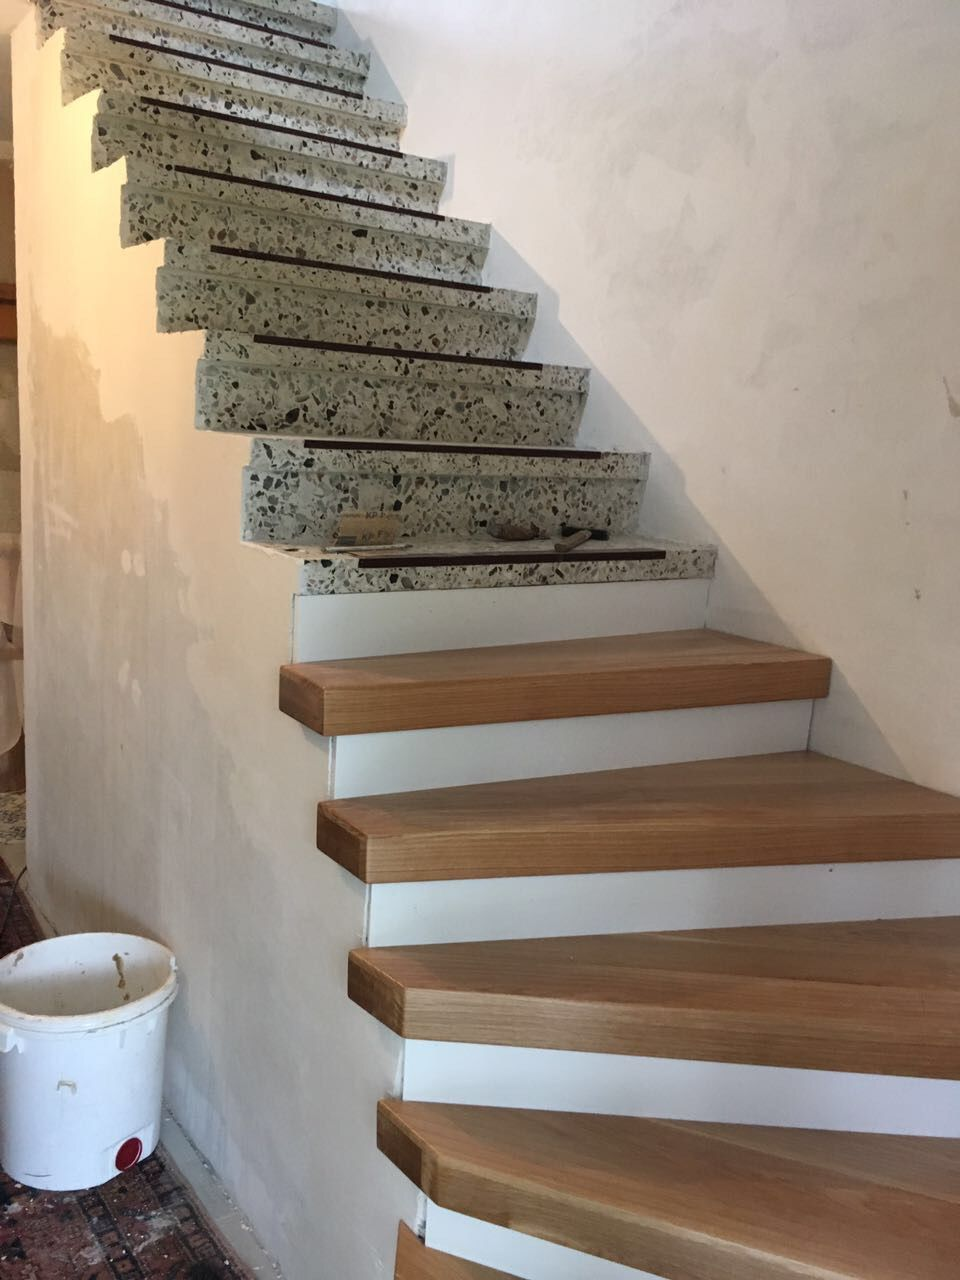 Treppenrenovierung Selber Machen Terrazzo Treppe Renovierung All Things House In 2019 Pinterest